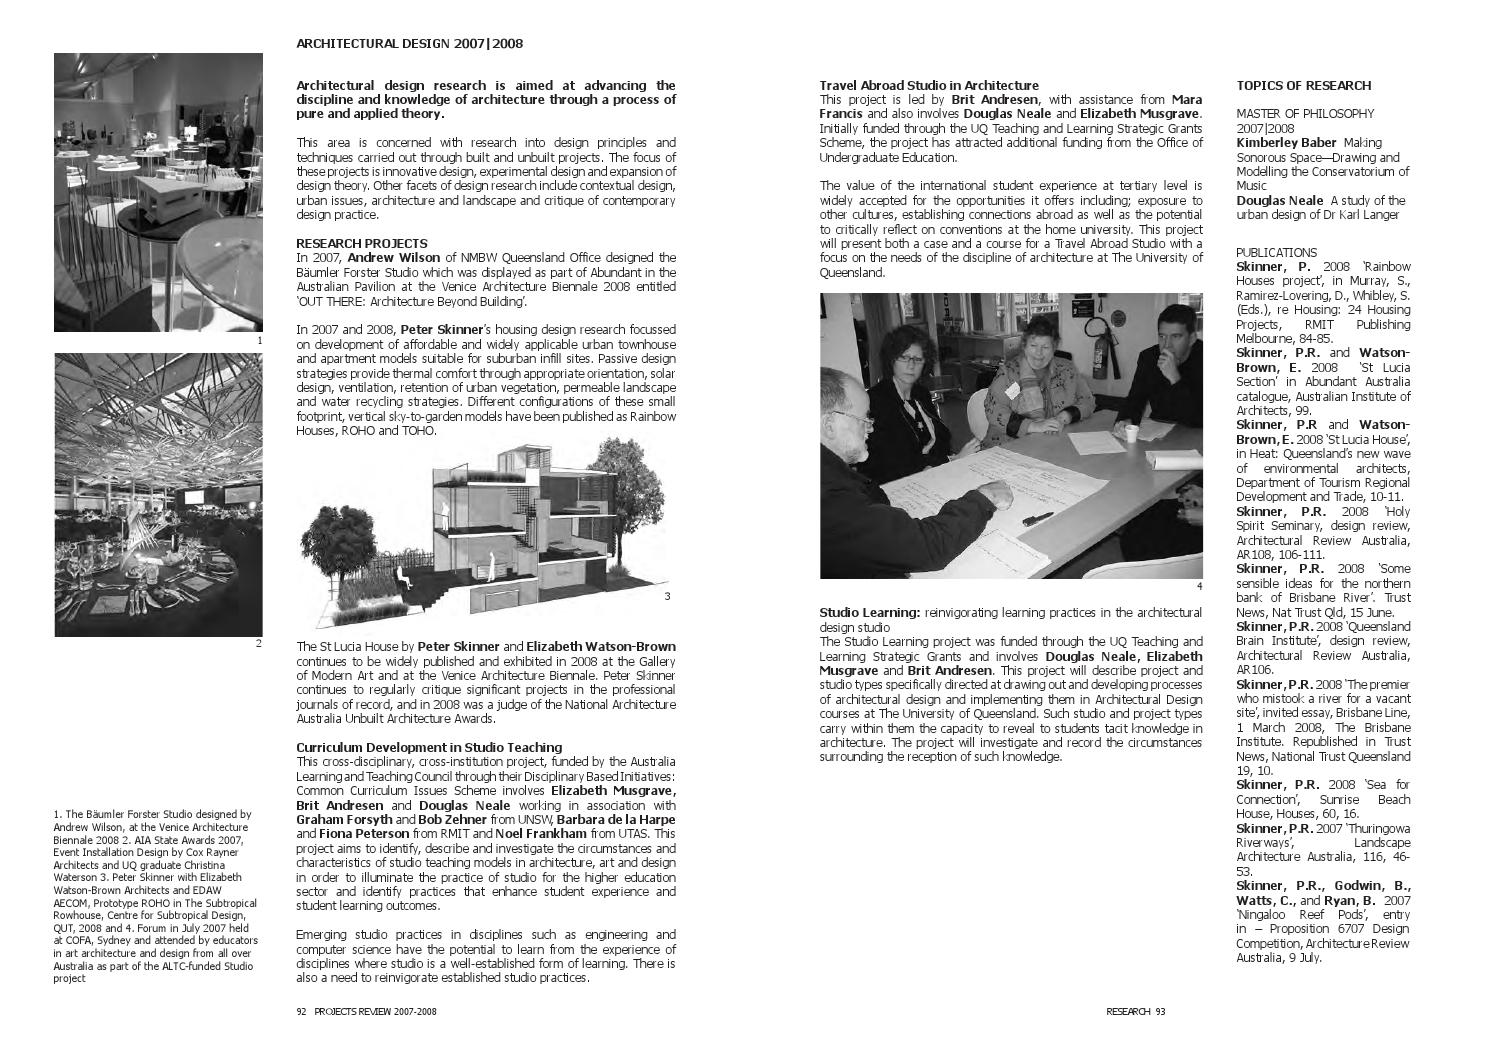 Pr 07 08 web by UQ Engineering, Architecture and Information